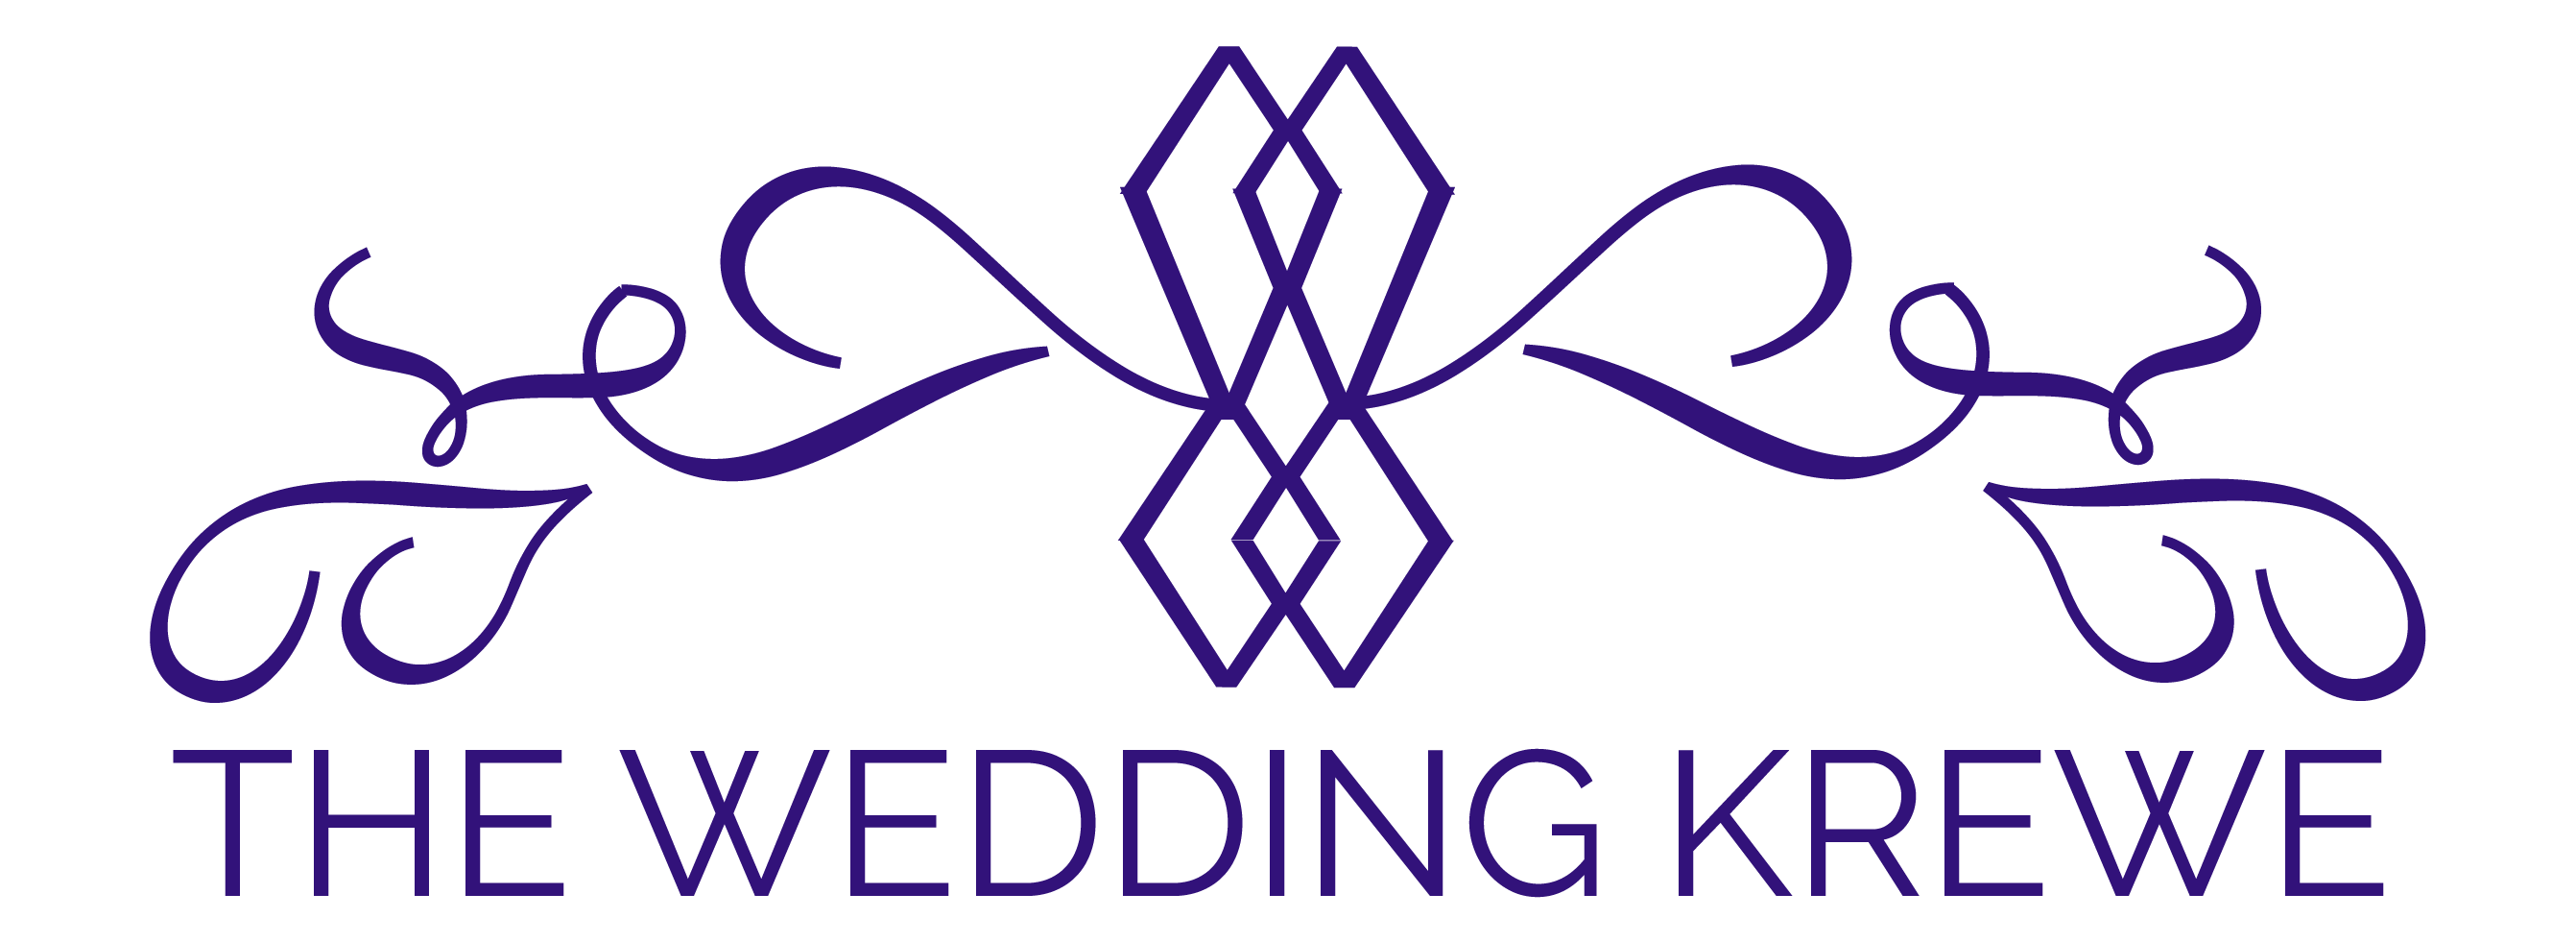 The Wedding Krewe